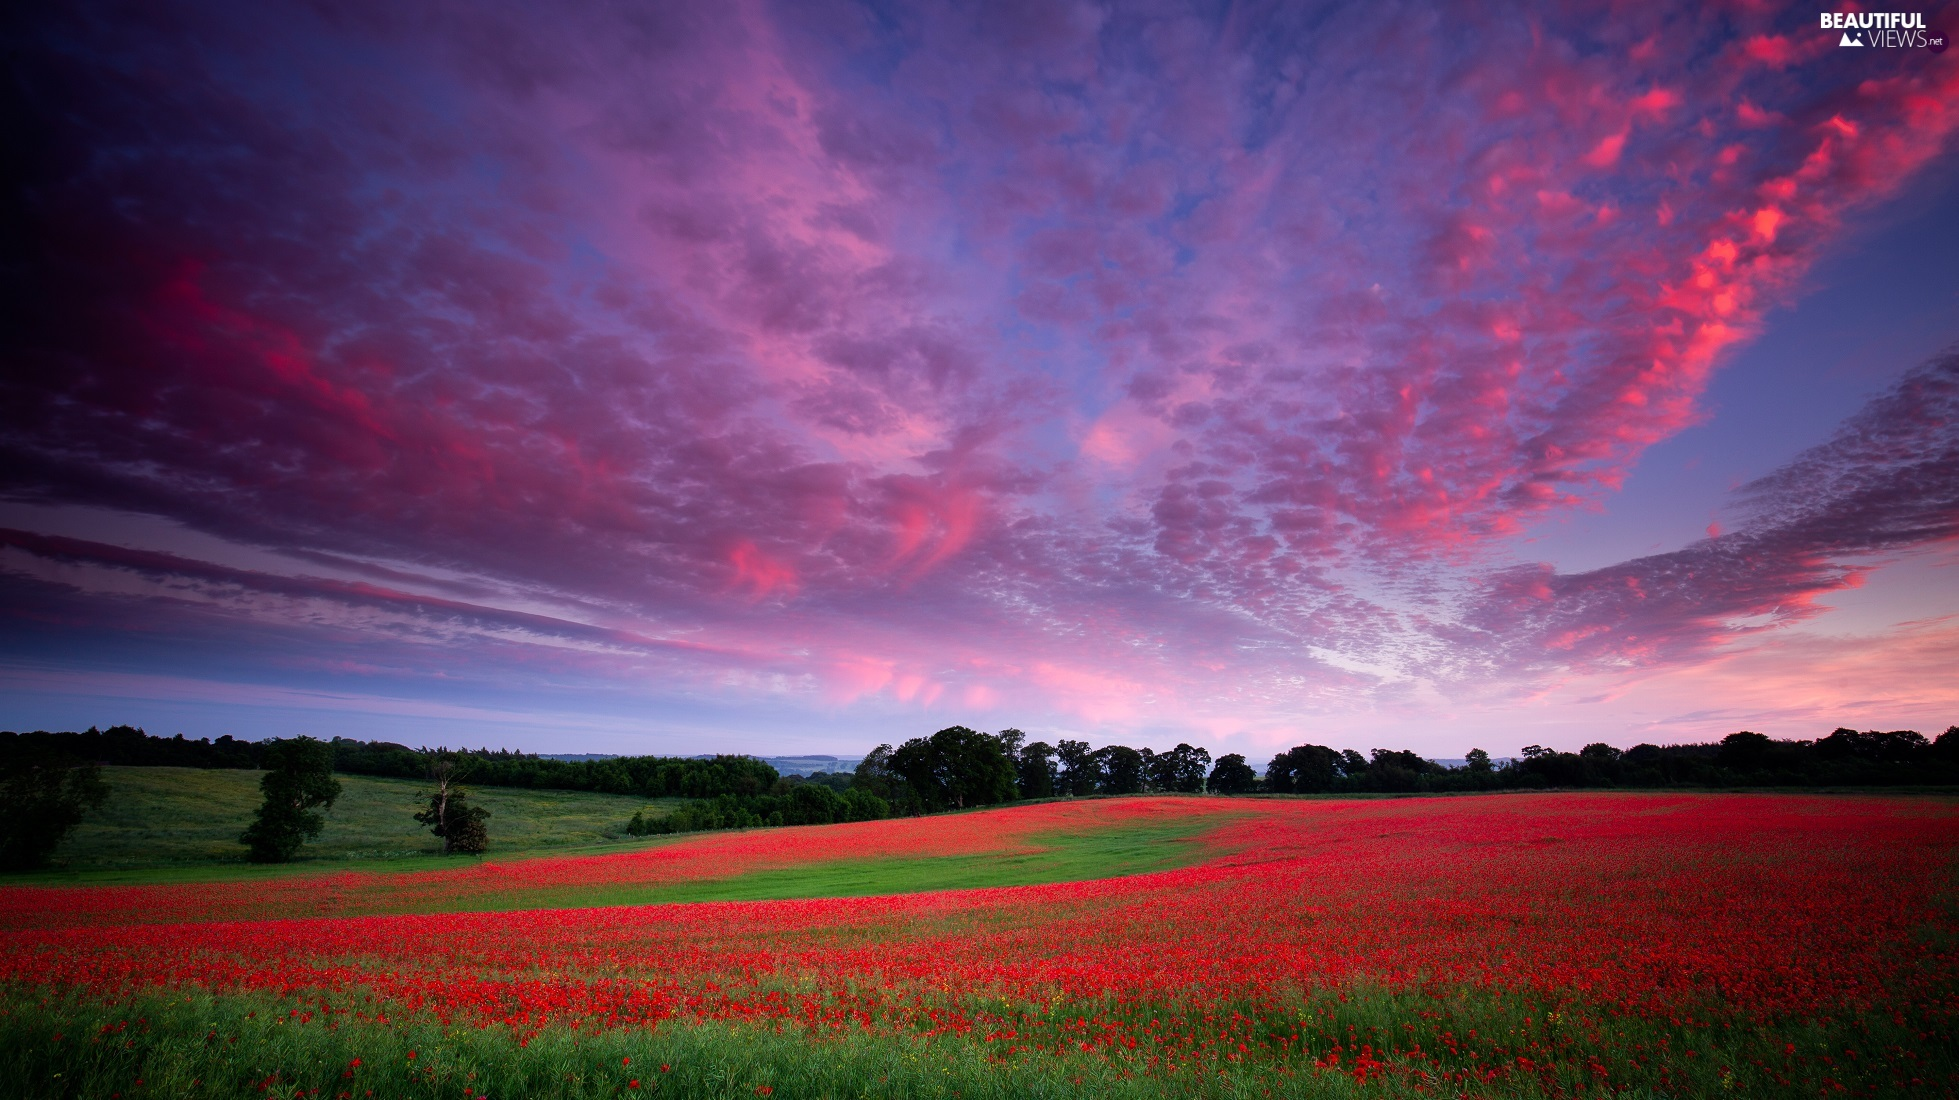 papavers, clouds, viewes, Flowers, Great Sunsets, trees, Meadow